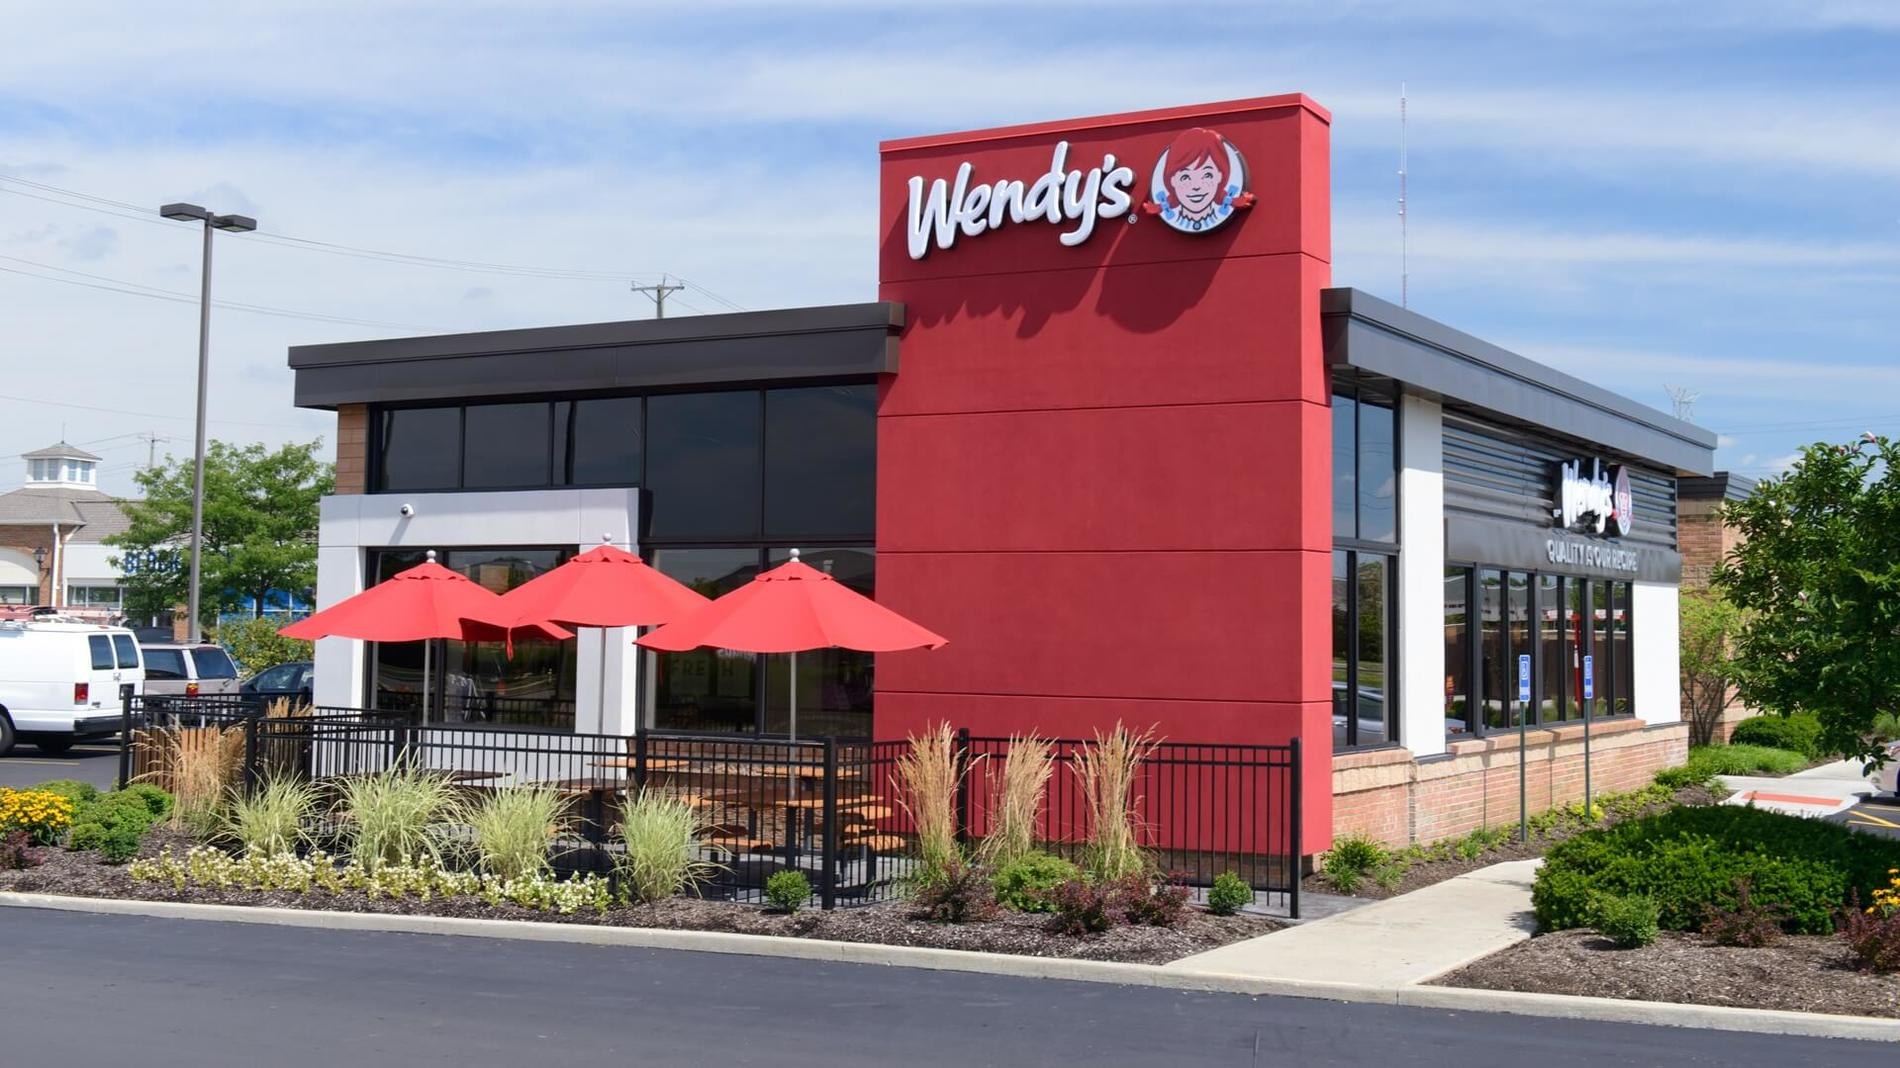 Wendy's 21 Dogpatch Trading Center: fast food, burgers